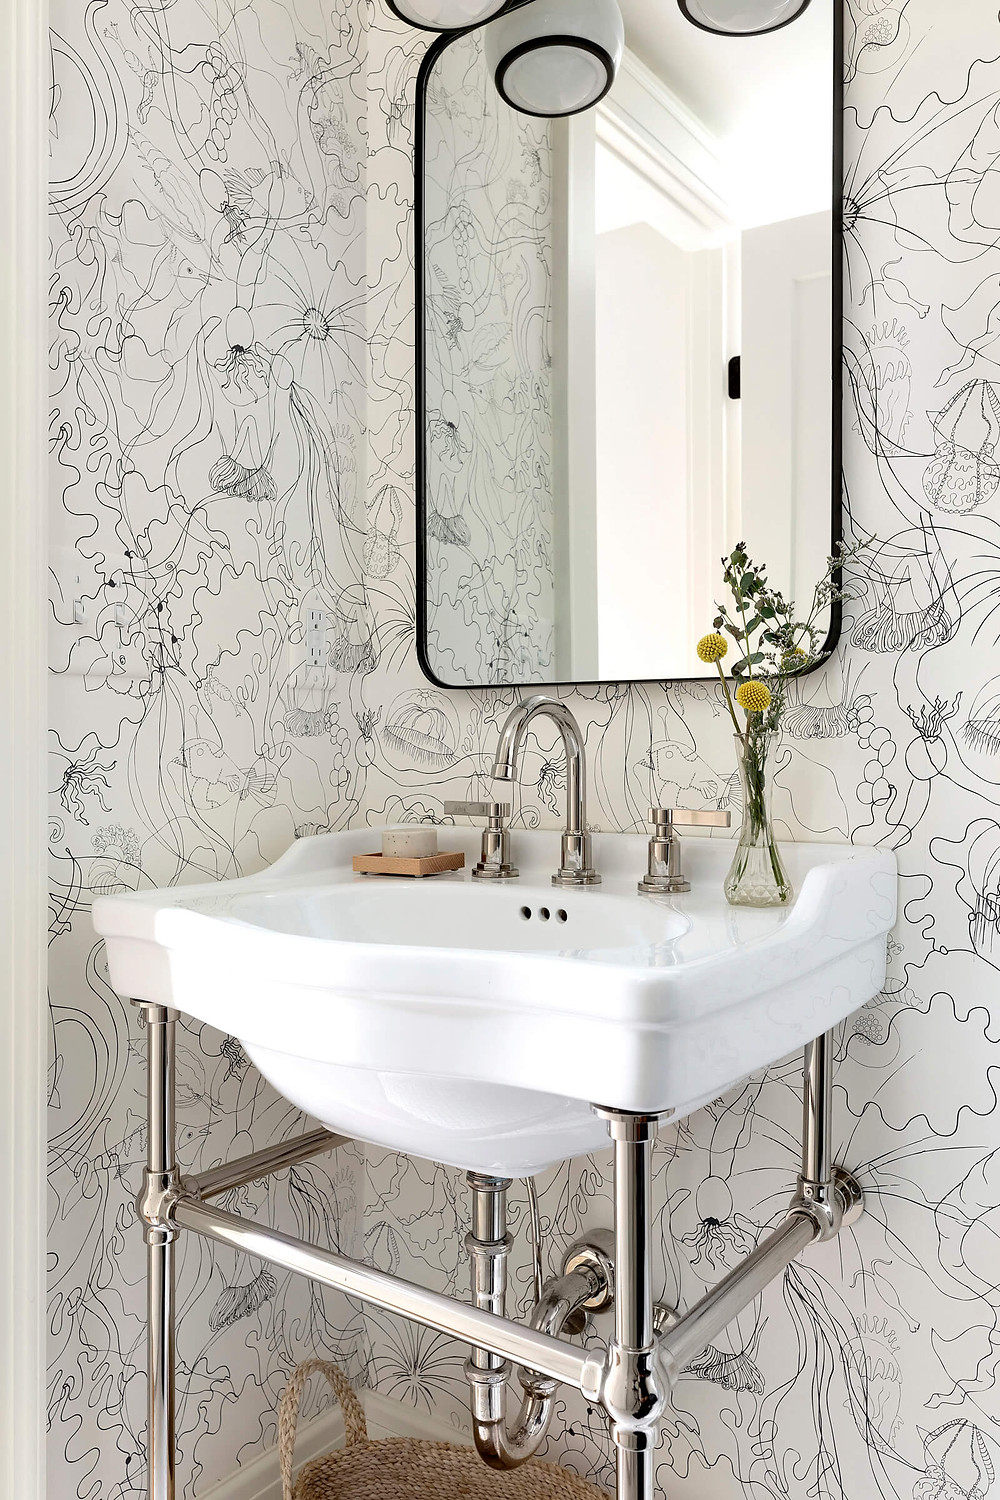 Powder bathroom with polished nickel console sink with playful sea creature wallpaper and black and white marble mosaic floor tile